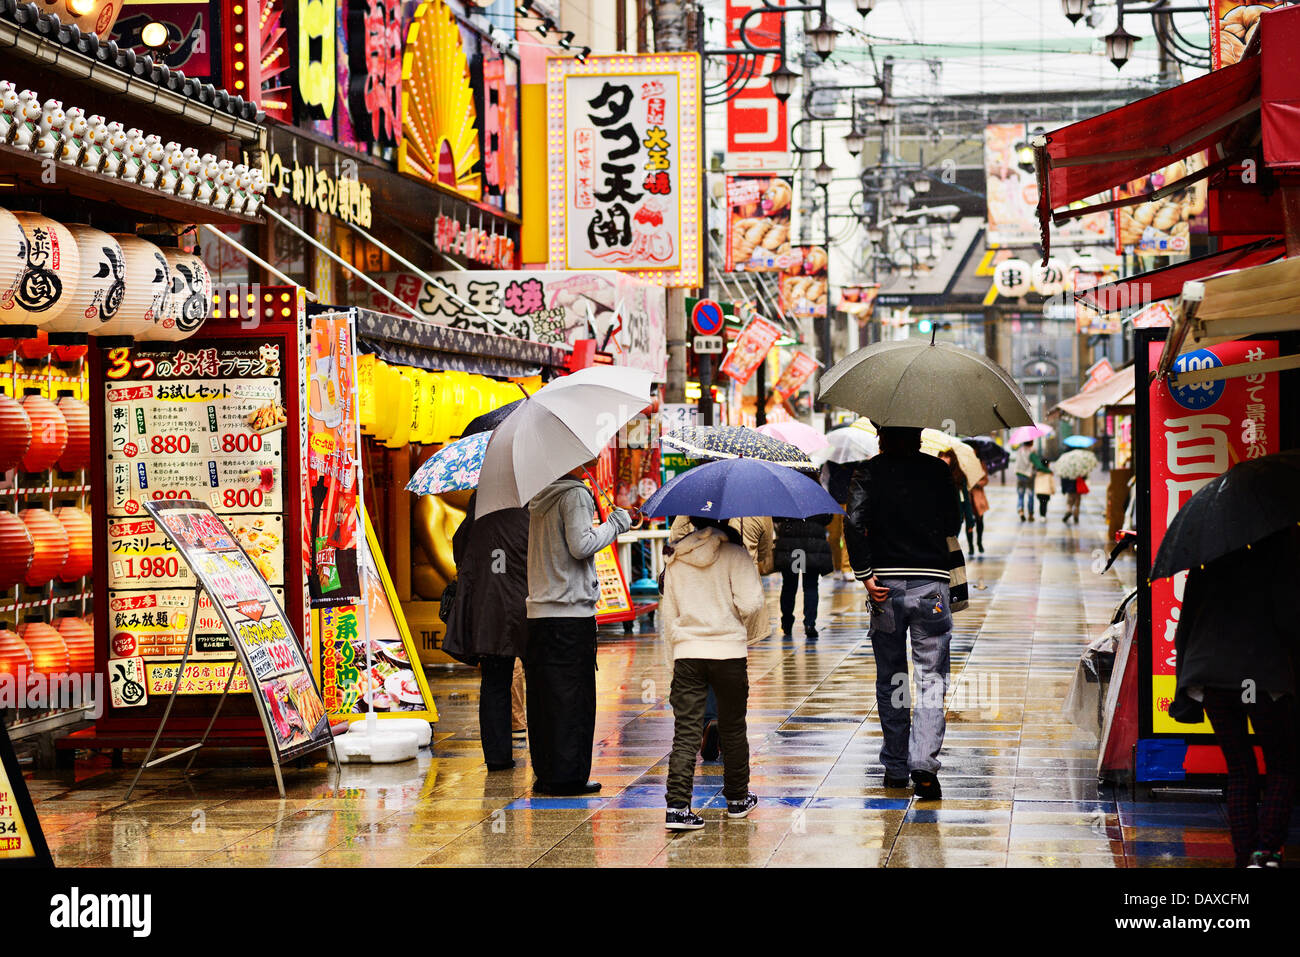 Nightlife district of Shinsekai in Osaka, Japan. - Stock Image